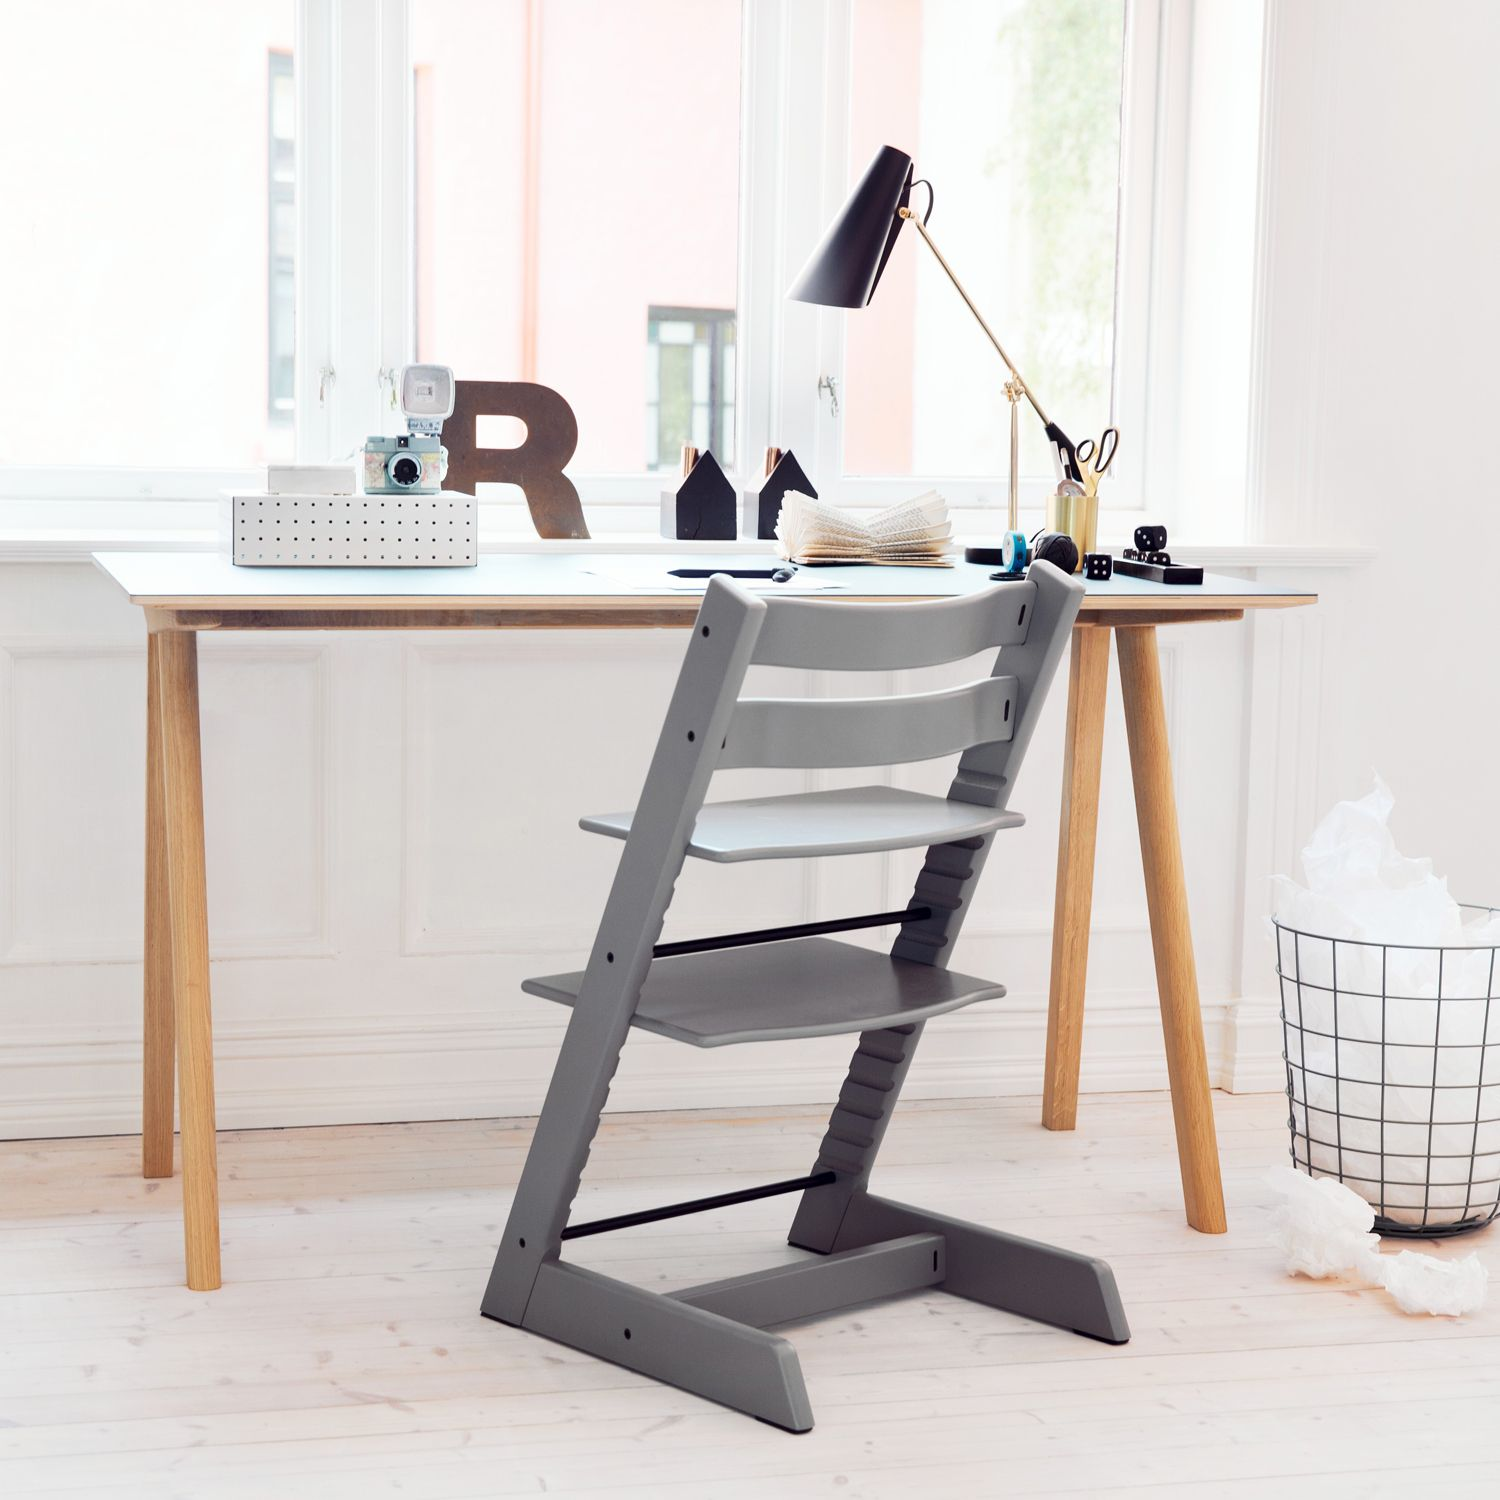 Stokke tripp trapp chair in storm grey the chair that for Cinture stokke tripp trapp